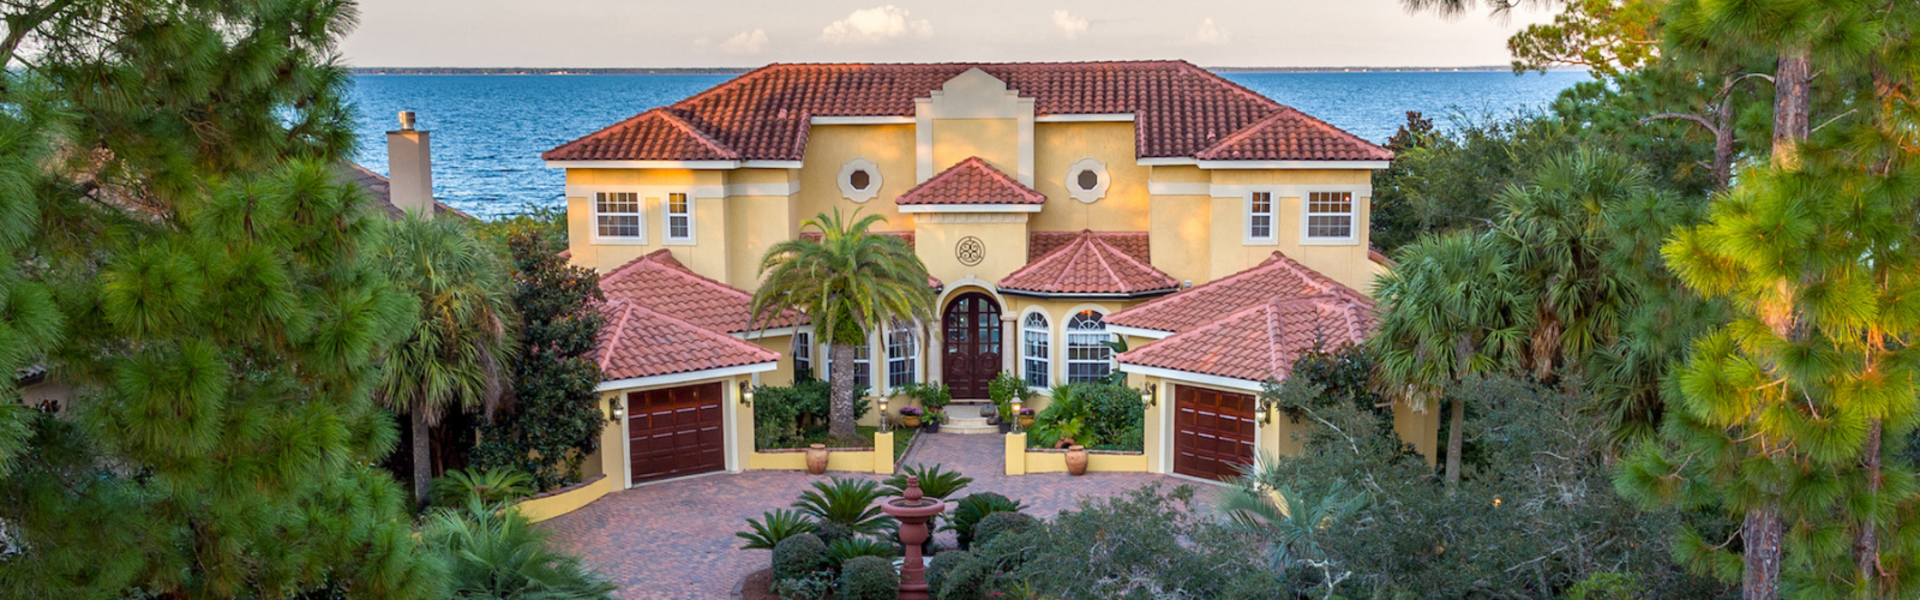 Just Sold on the Bay: 1239 Driftwood Point Road